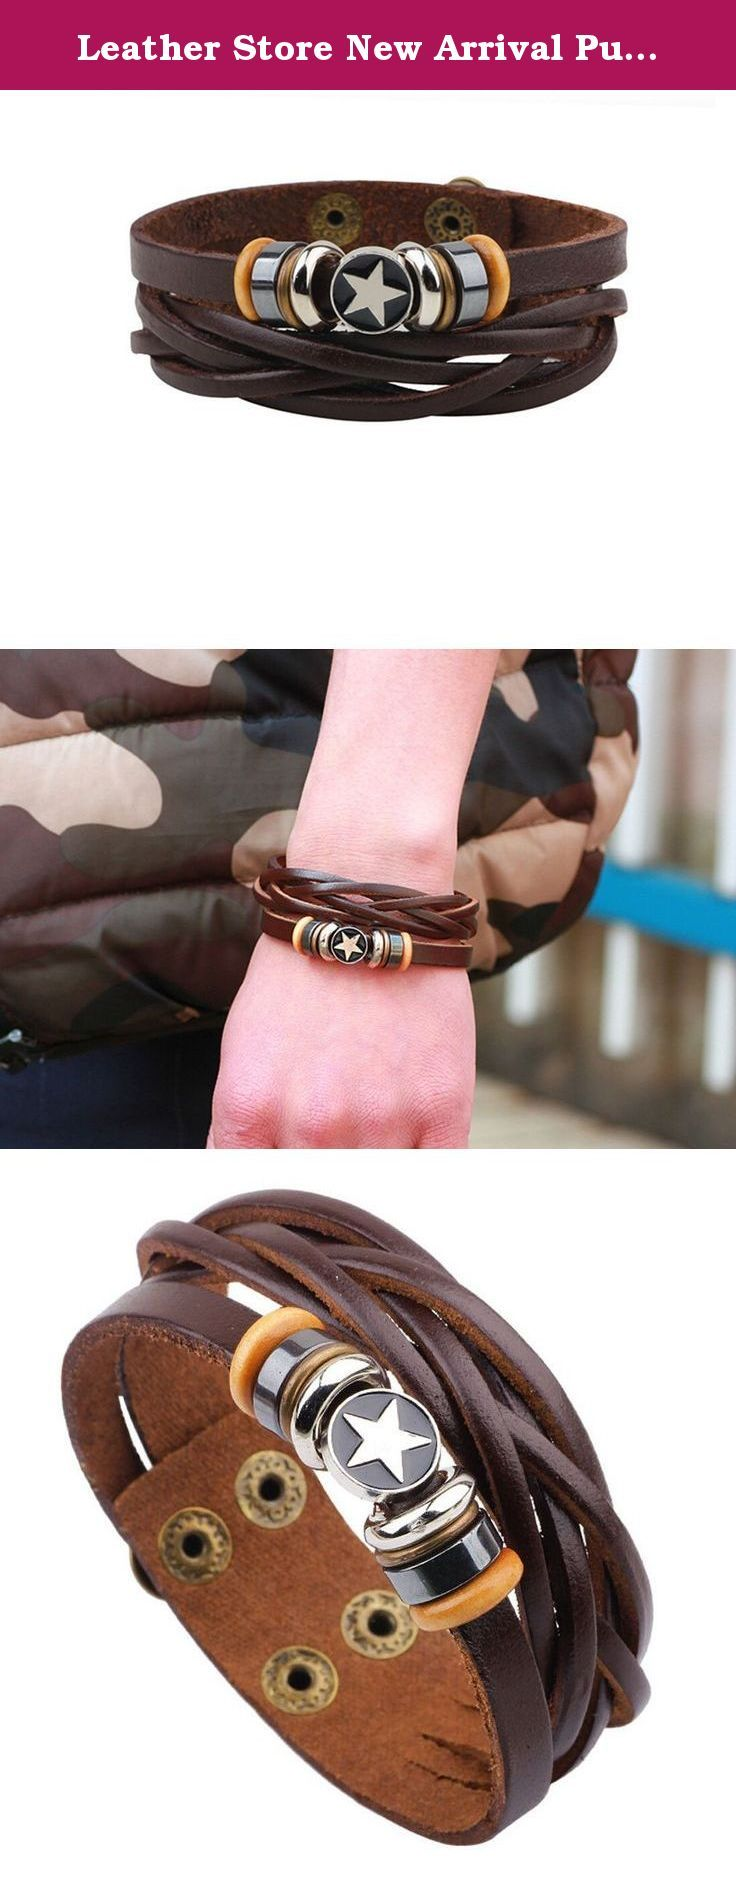 Leather Store New Arrival Punk Rivets Bicyclic Five-pointed Star Leather Wristband Bracelet. The selection of high-quality jewelry featured in Leather Store Jewelry offers great values at affordable price, they are mainly made of high quality stainless steel, tungsten, silver and leather.